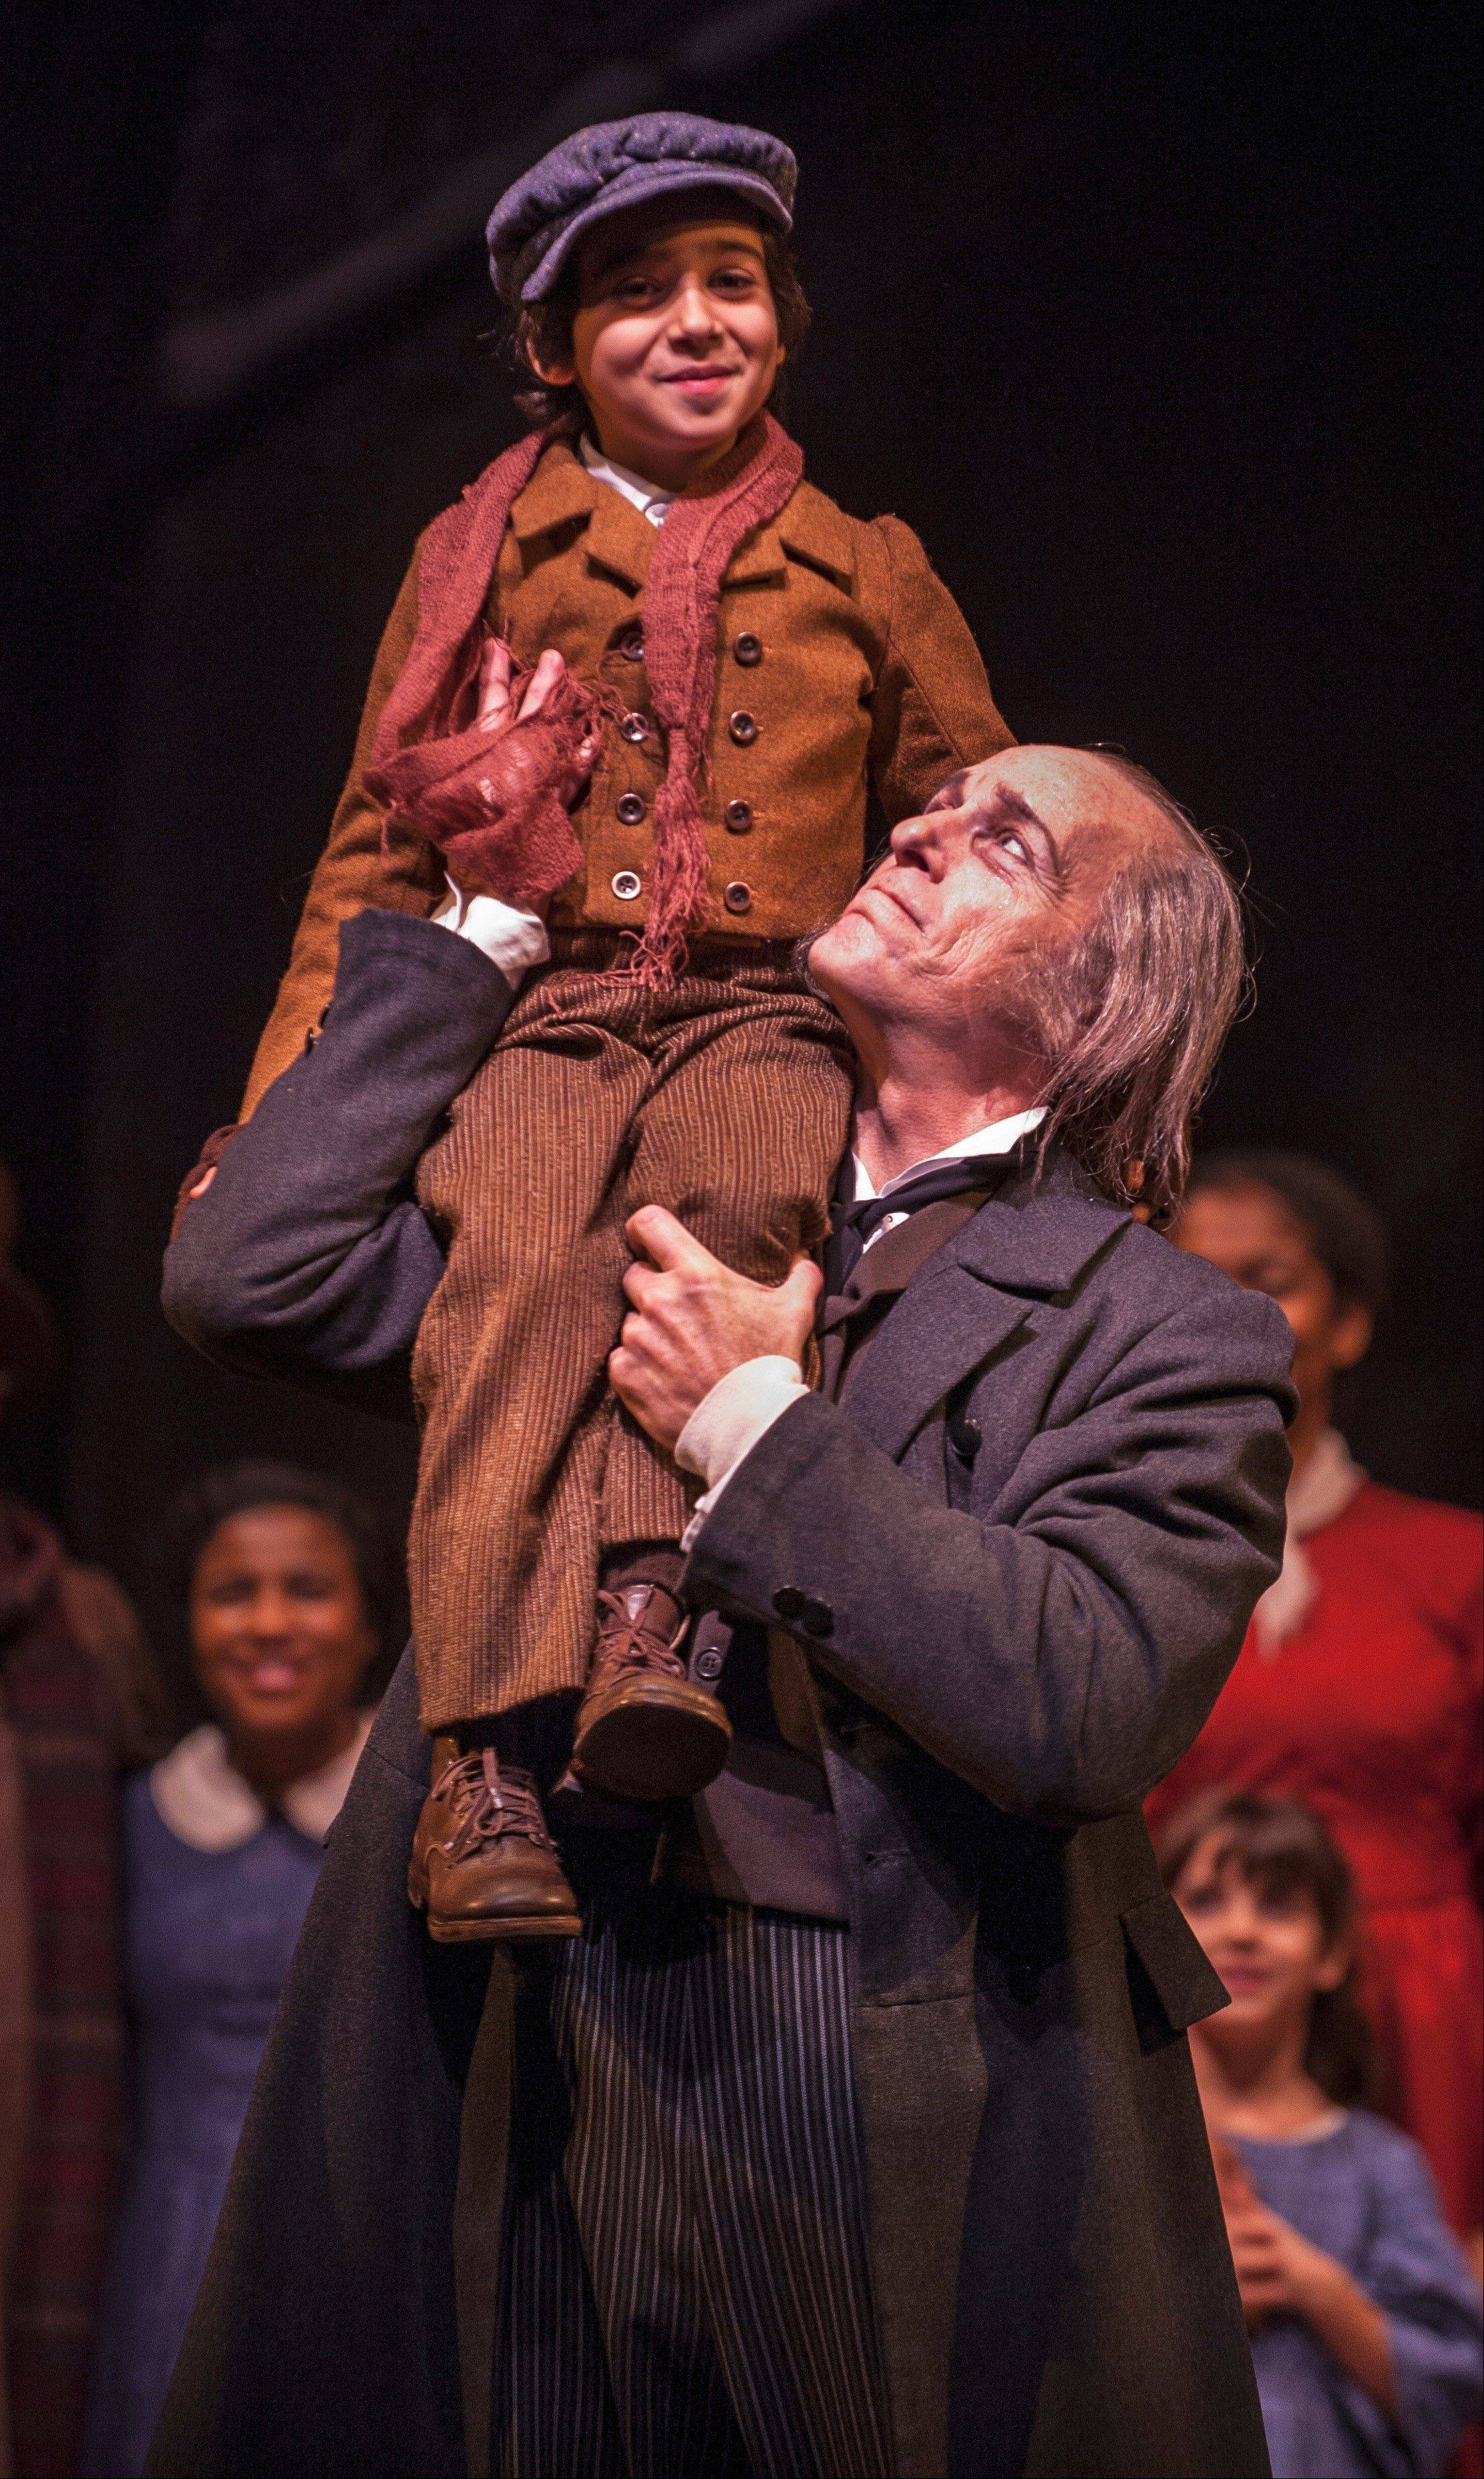 """A Christmas Carol"" runs through Dec. 29 at Goodman Theatre in Chicago."